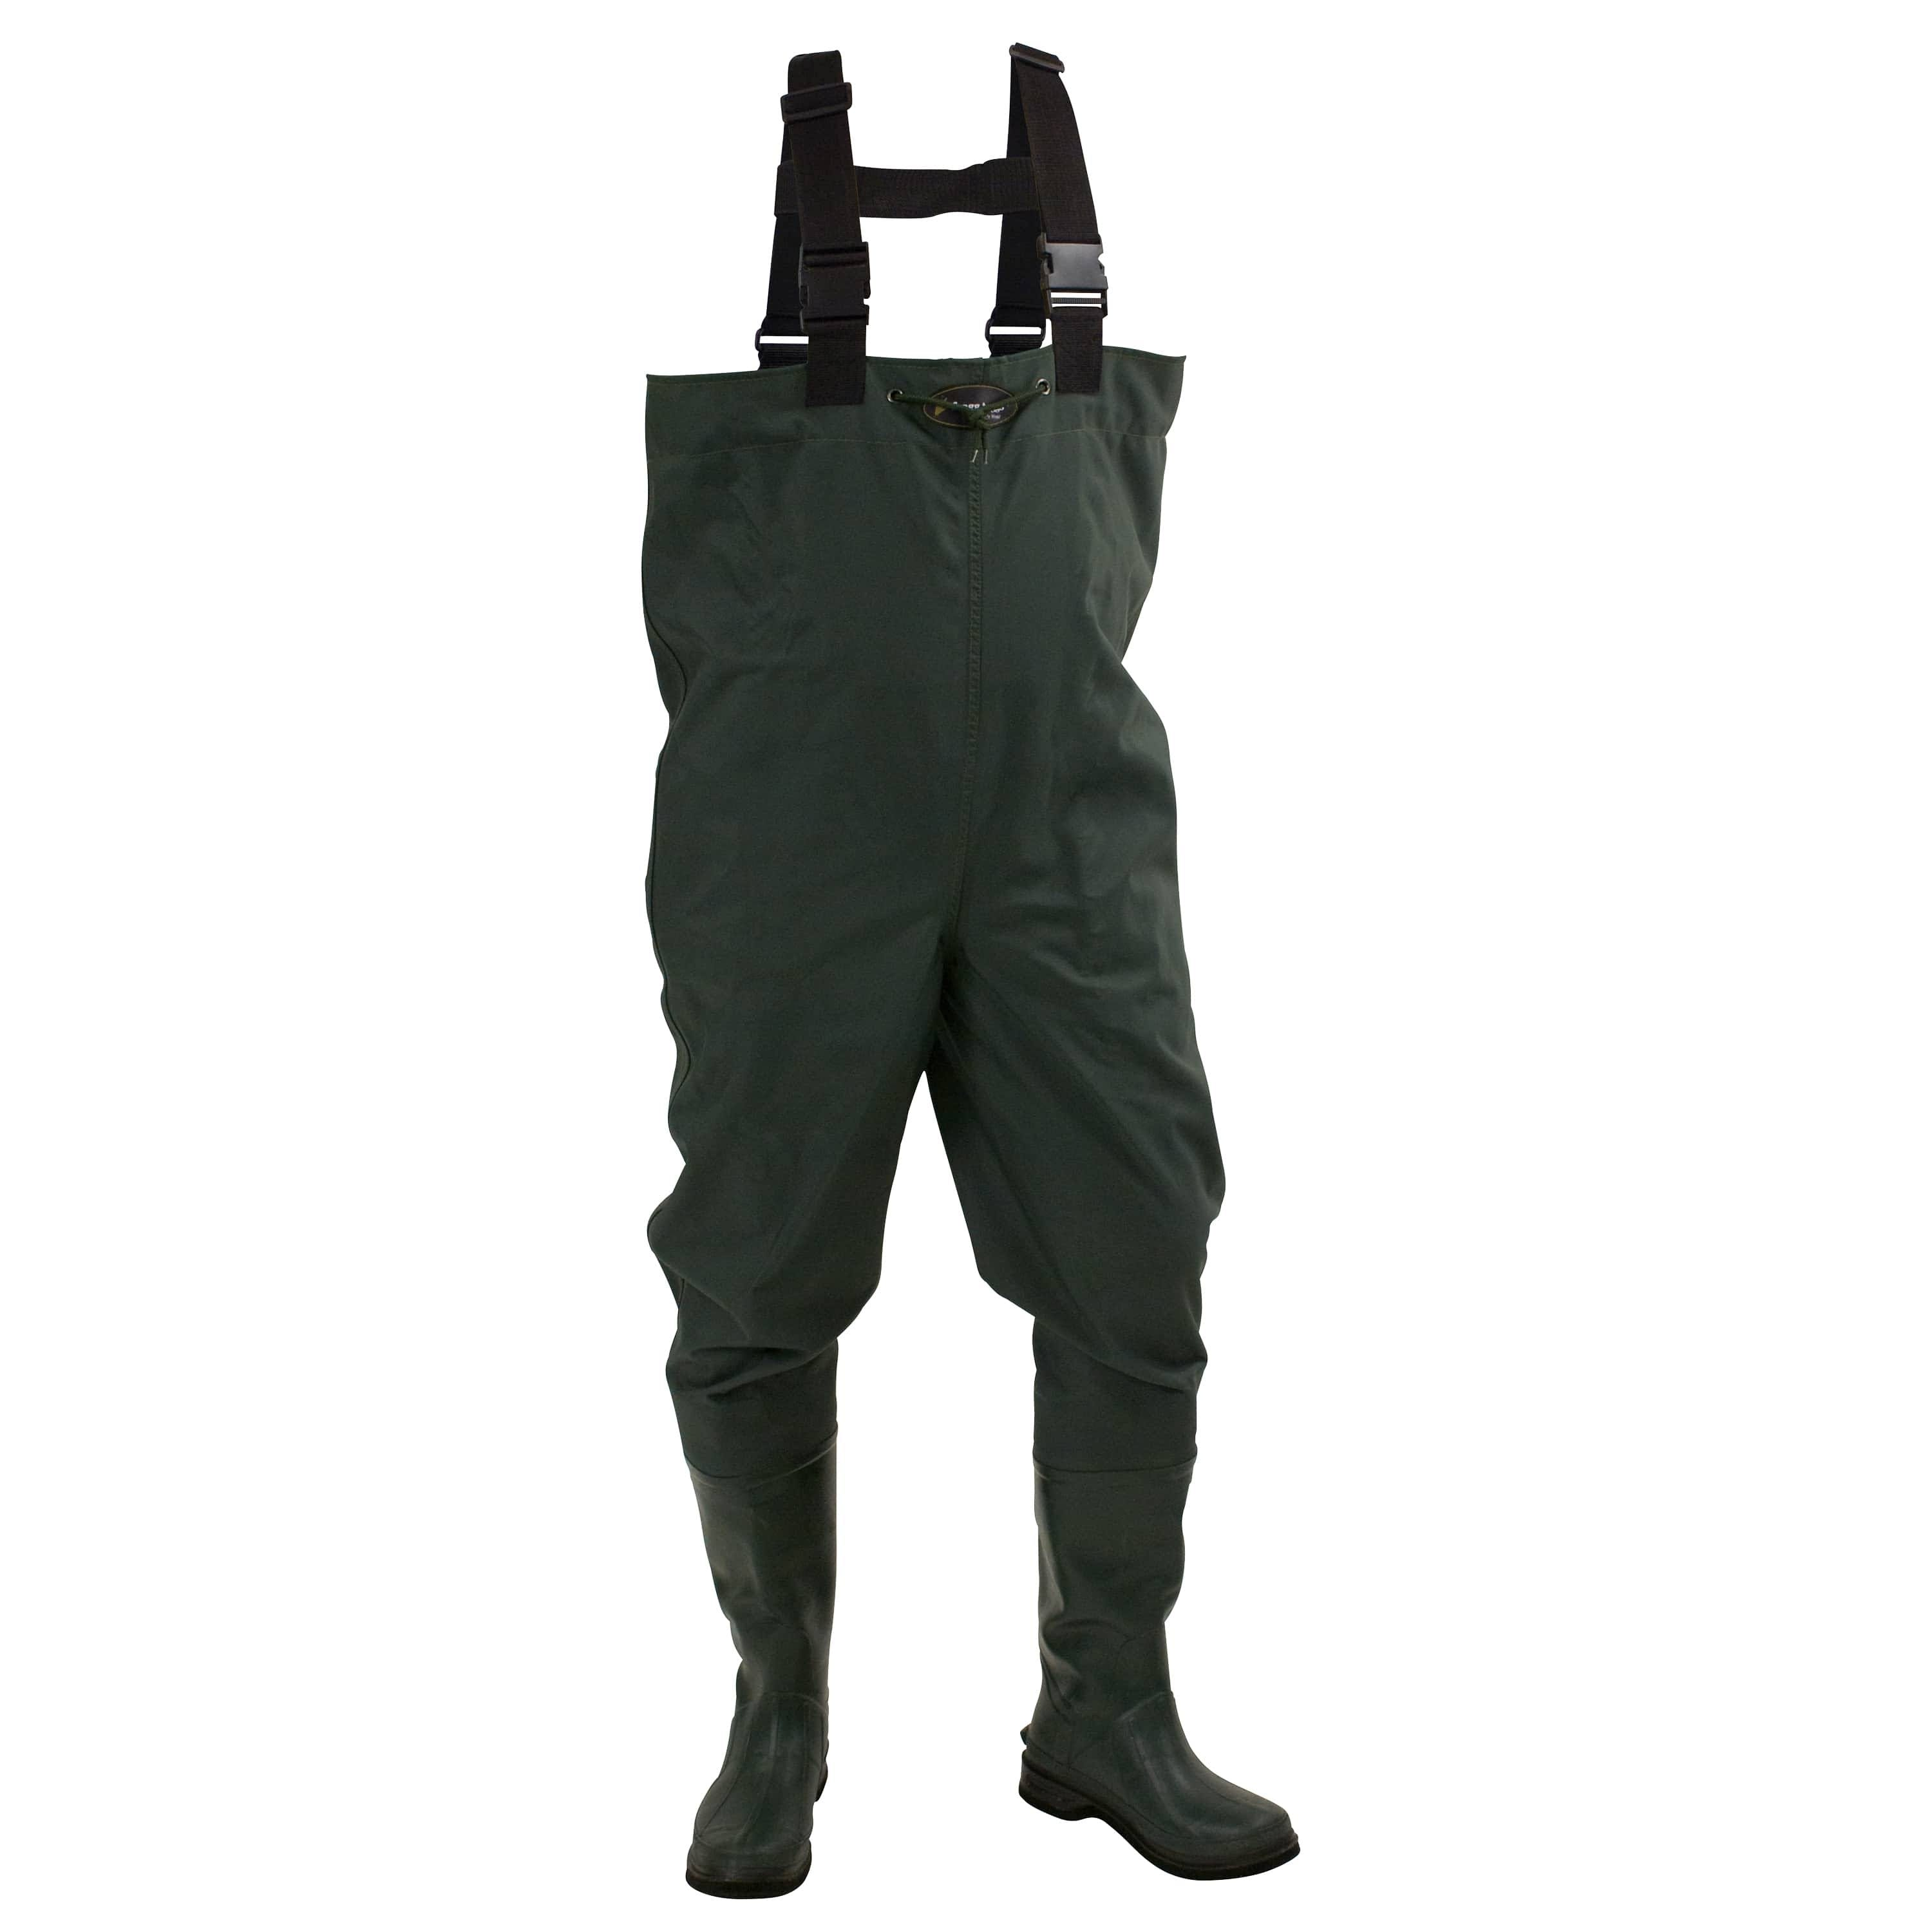 Frogg Toggs Cascades 2Ply Rubber Bootfoot Chest Wader - Felt Forest Green 13